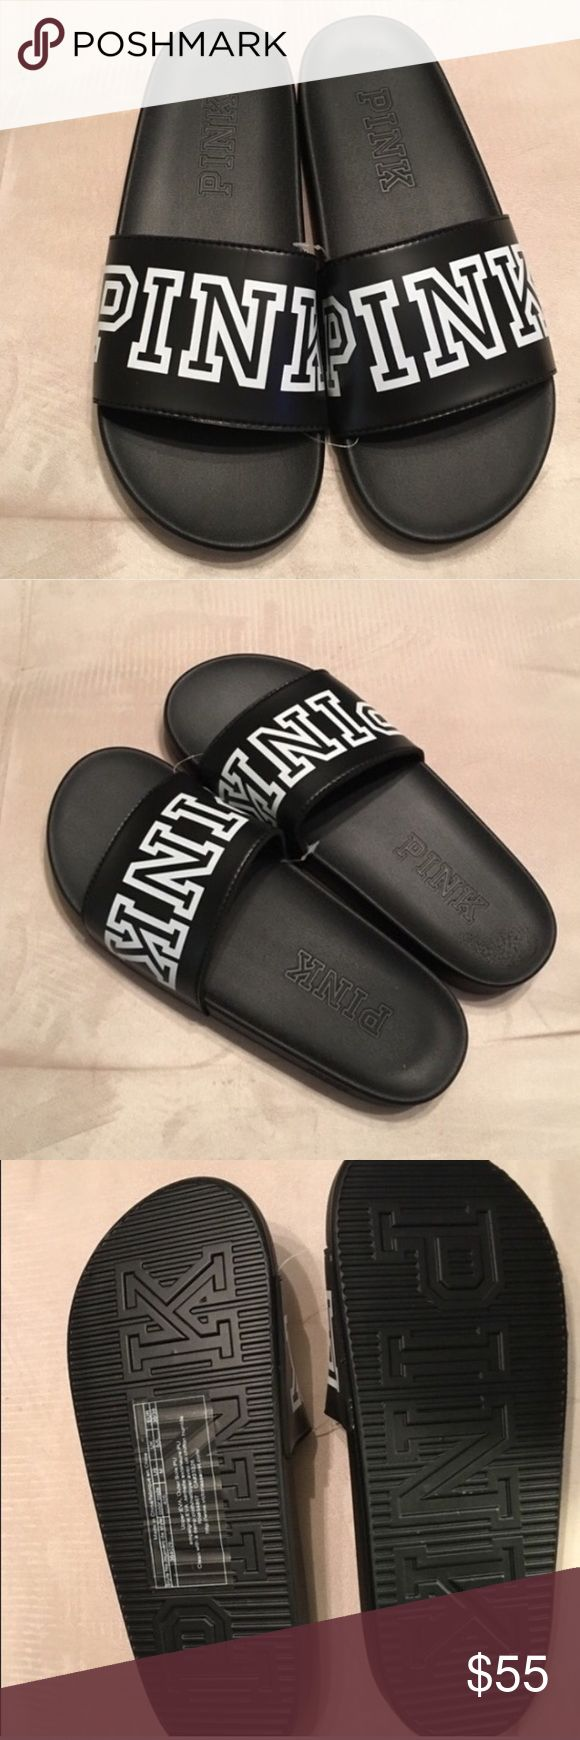 Victoria's Secret pink slides sandals slippers S Victoria's Secret Pink Nation Slides Sandals shoes slippers flip flop slide on.  Size Small 5/6 